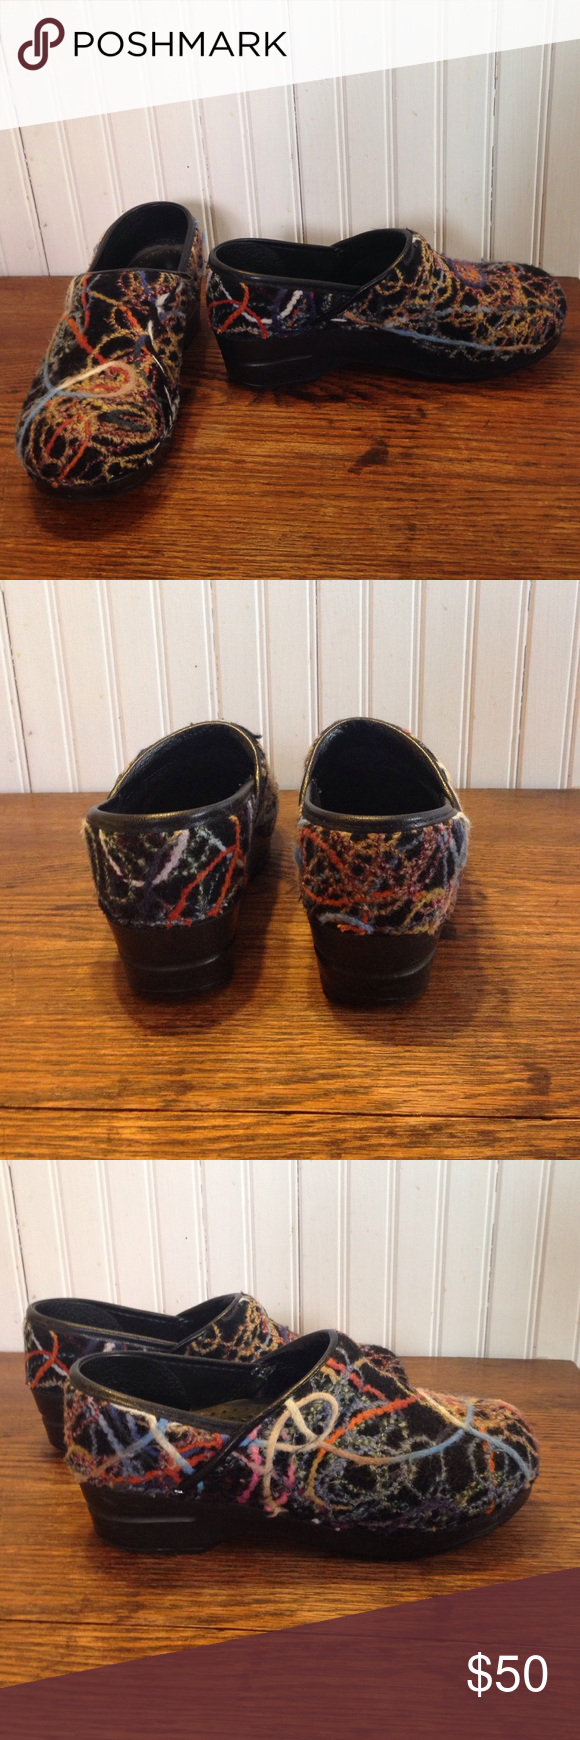 Dansko Clogs Black Professional Size 36 For Women Dansko Clogs Black Dansko clogs black professional size 36. Yarn like design . Great condition  Dansko Clogs Black Dansko Shoes Mules & Clogs